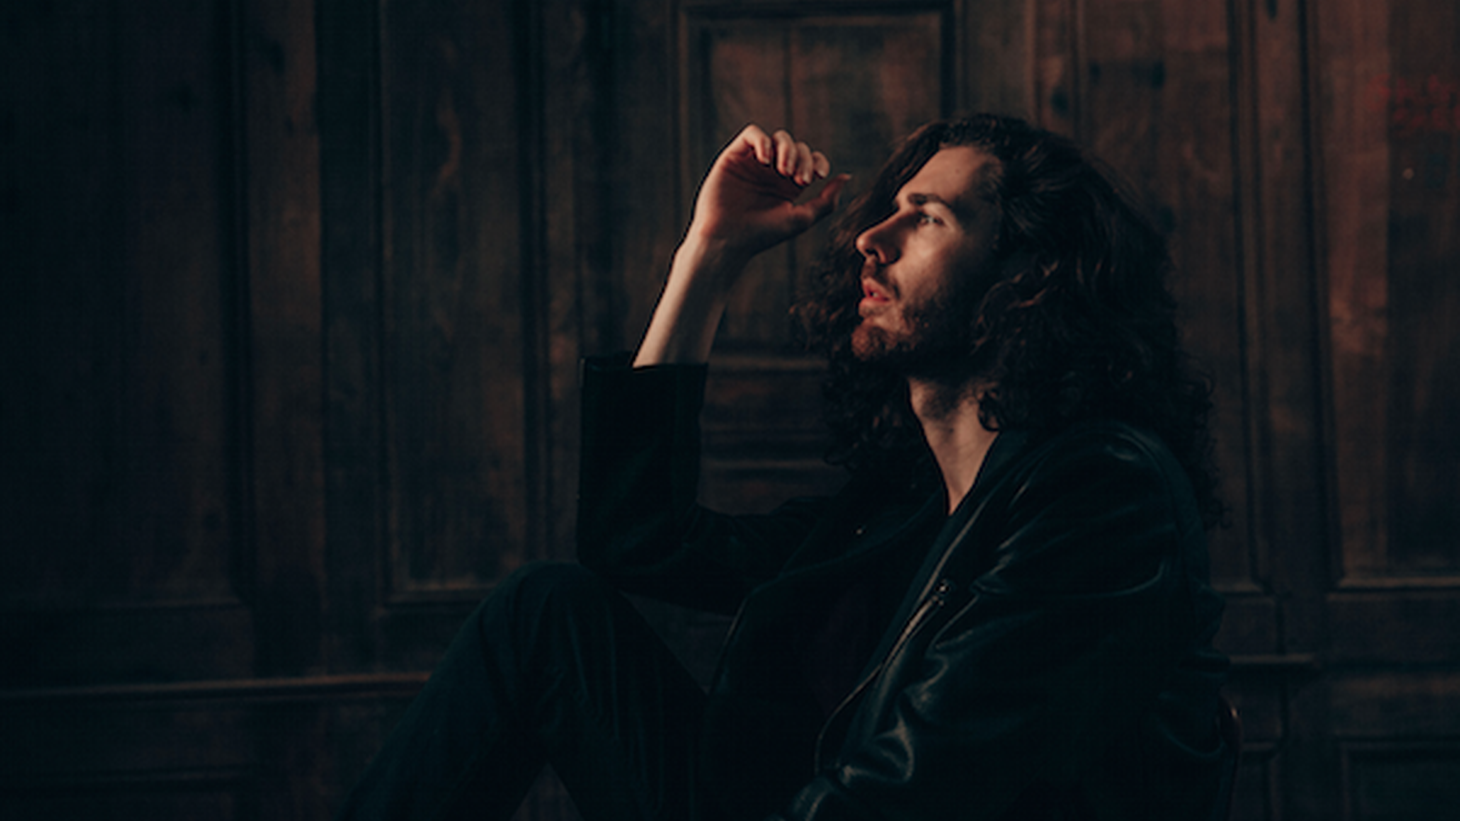 Irish singer Hozier rose quickly to global fame then dropped out of the public eye.